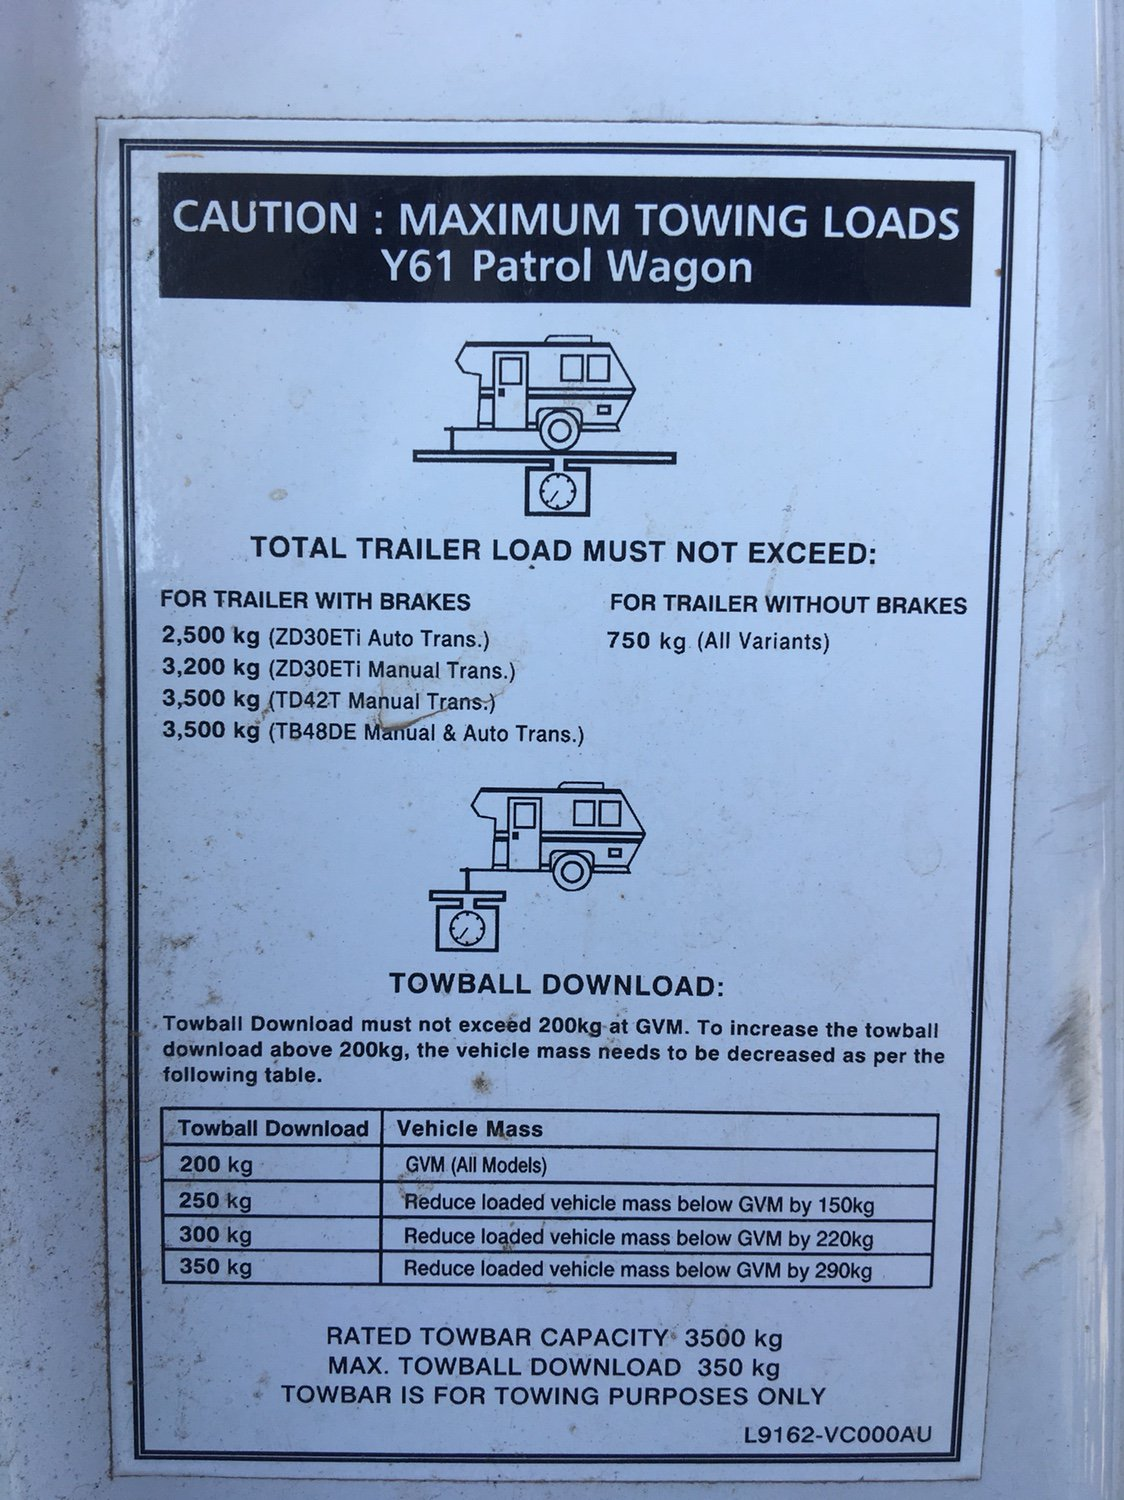 Towing camper trailer with zd30 patrol  - Page 3